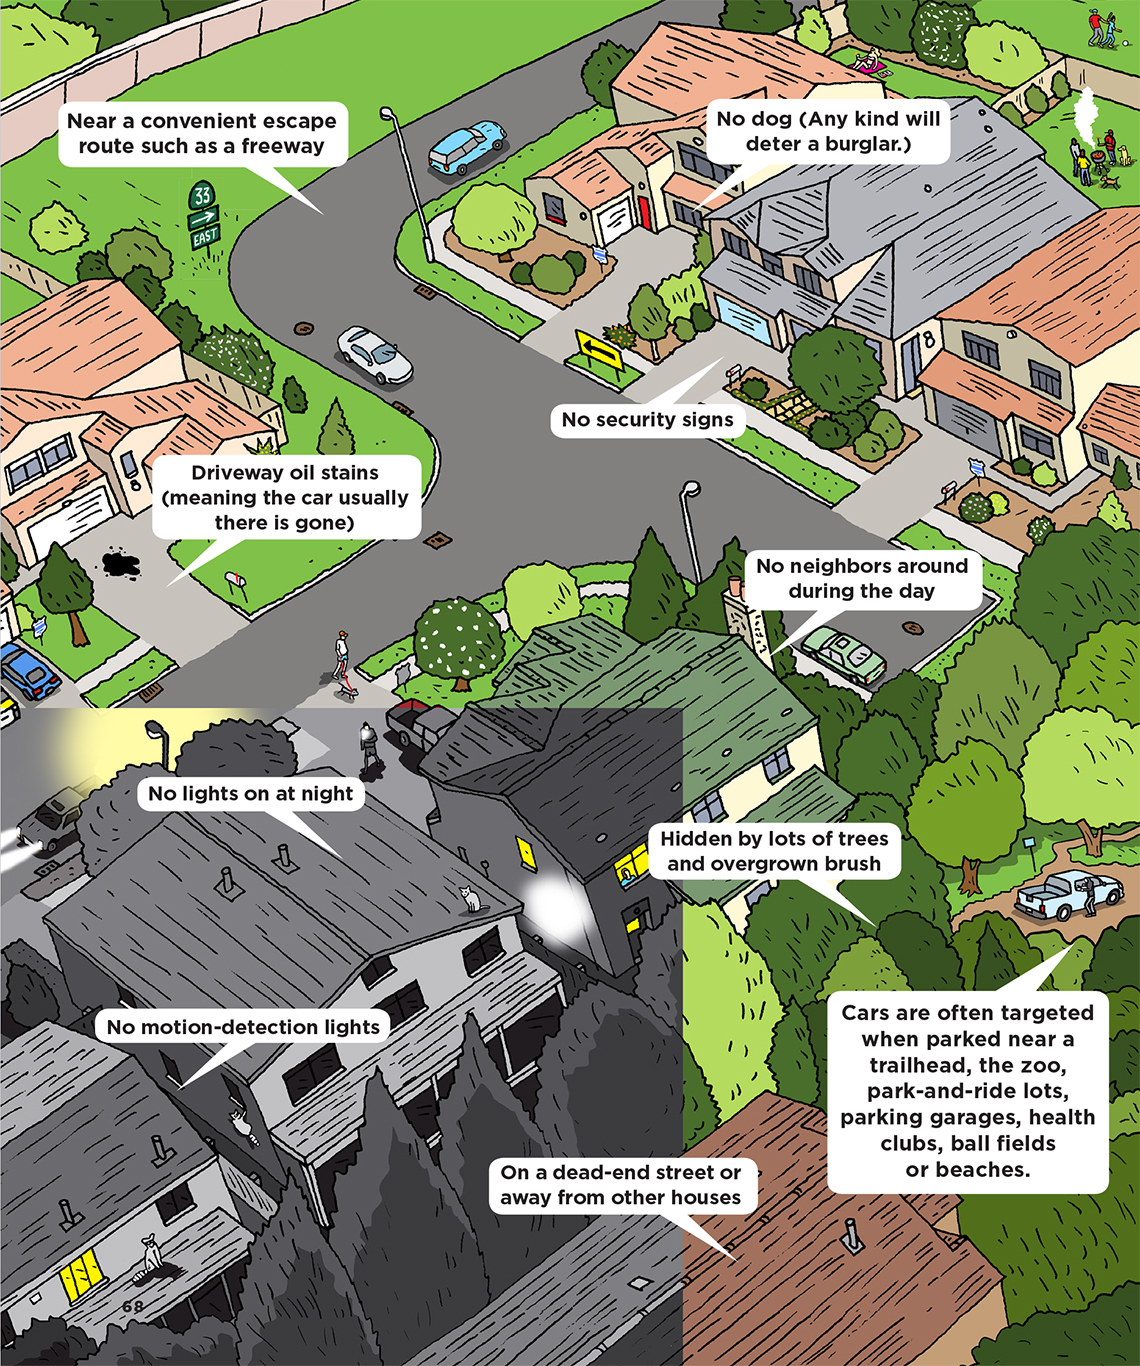 Illustration of a neighborhood, text reads, near a convenient escape route such as a freeway, no dog, no security signs, no neighbors around, driveway oil stains, no lights at night, no motion-detection lights, trees hiding home, dead-end location